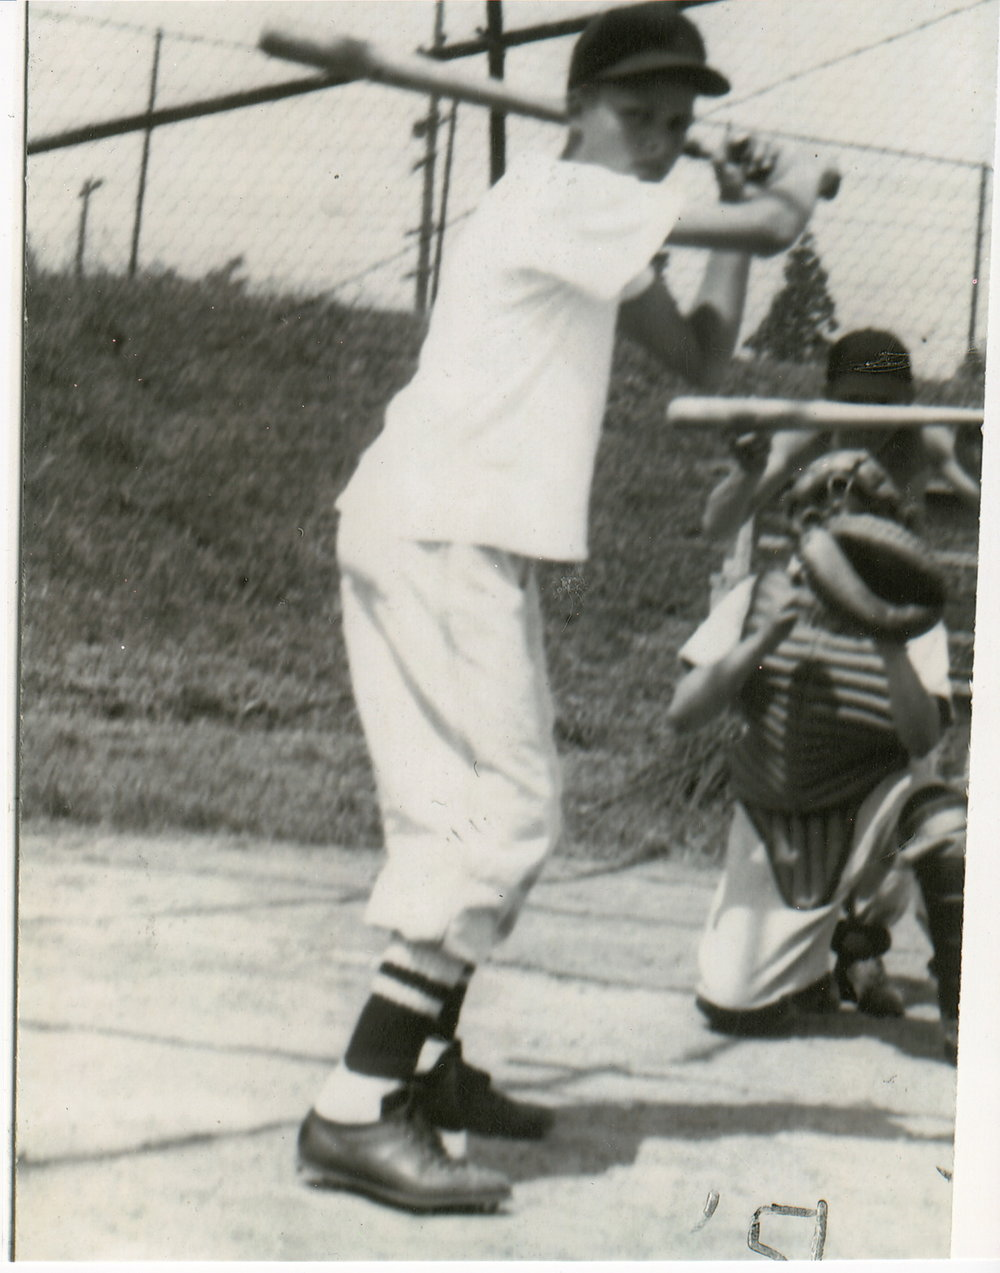 Happy fathers day to my dad! This photo was taken of him playing baseball in 1951 at a local field in Seattle, Wa.